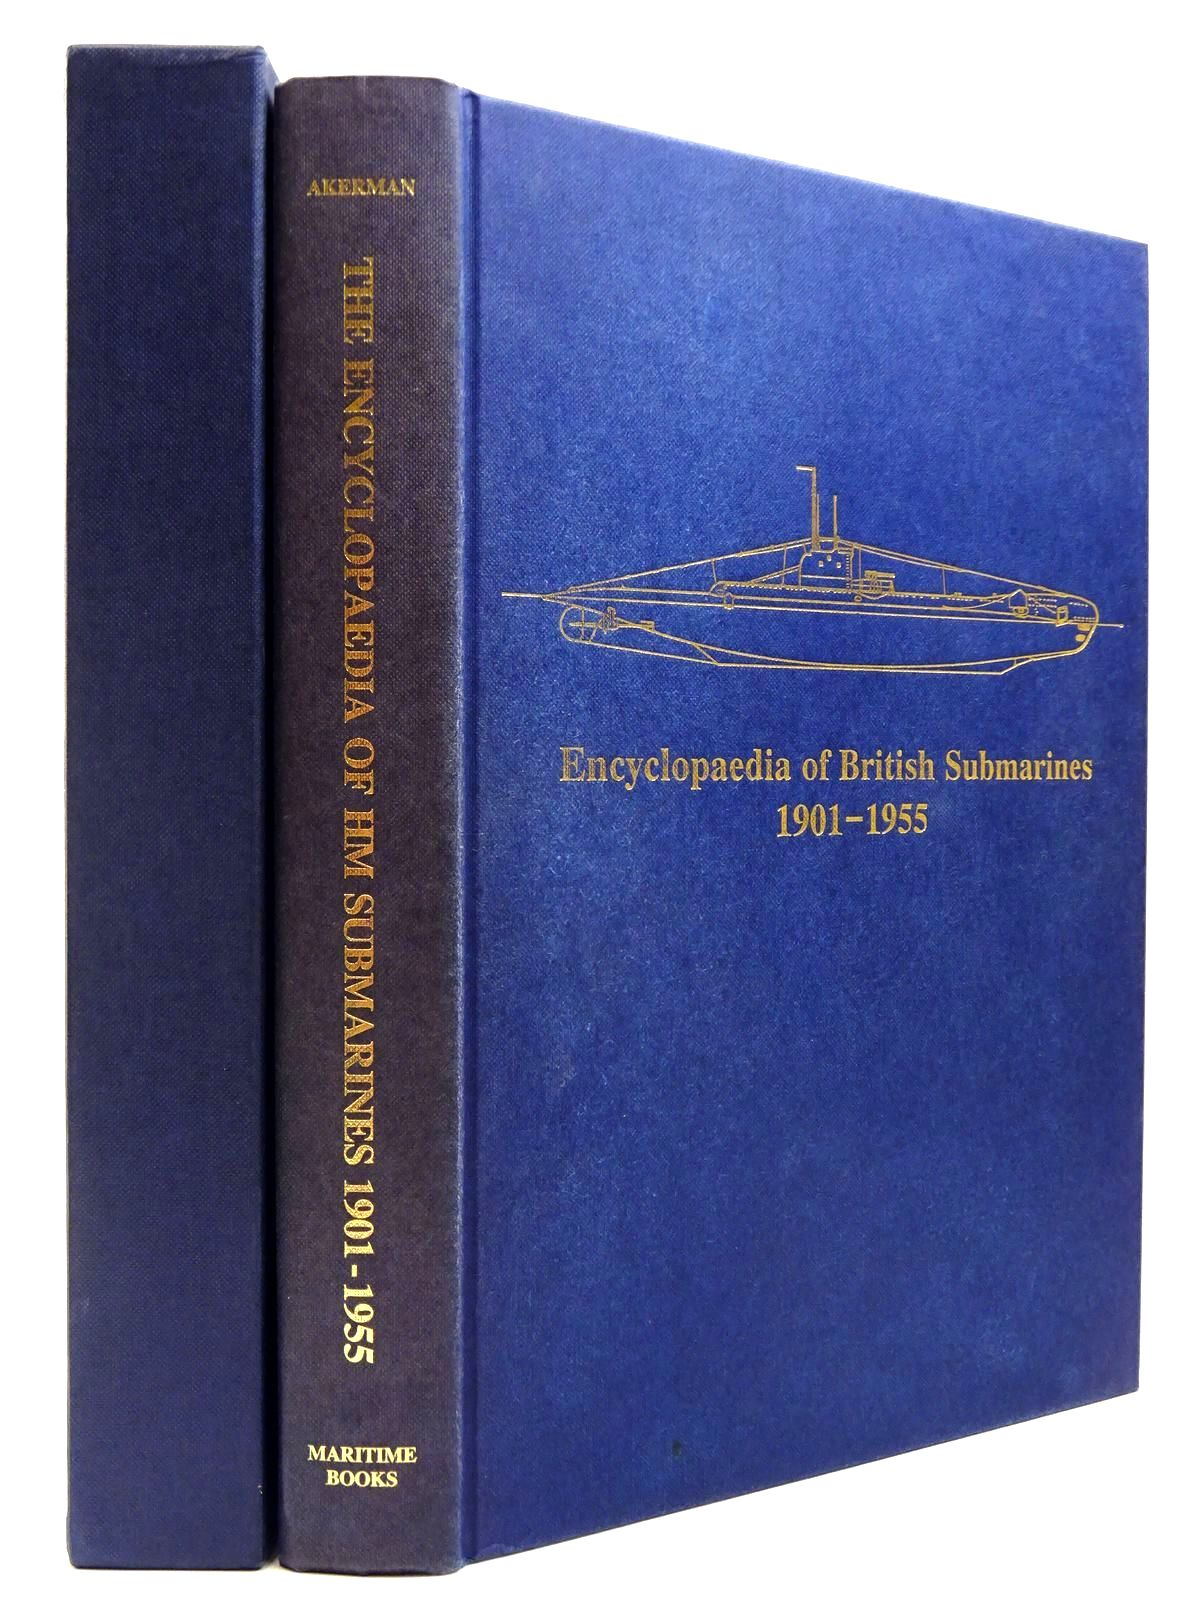 Photo of ENCYCLOPAEDIA OF BRITISH SUBMARINES 1901-1955 written by Akermann, Paul published by Paul Akermann (STOCK CODE: 2130637)  for sale by Stella & Rose's Books